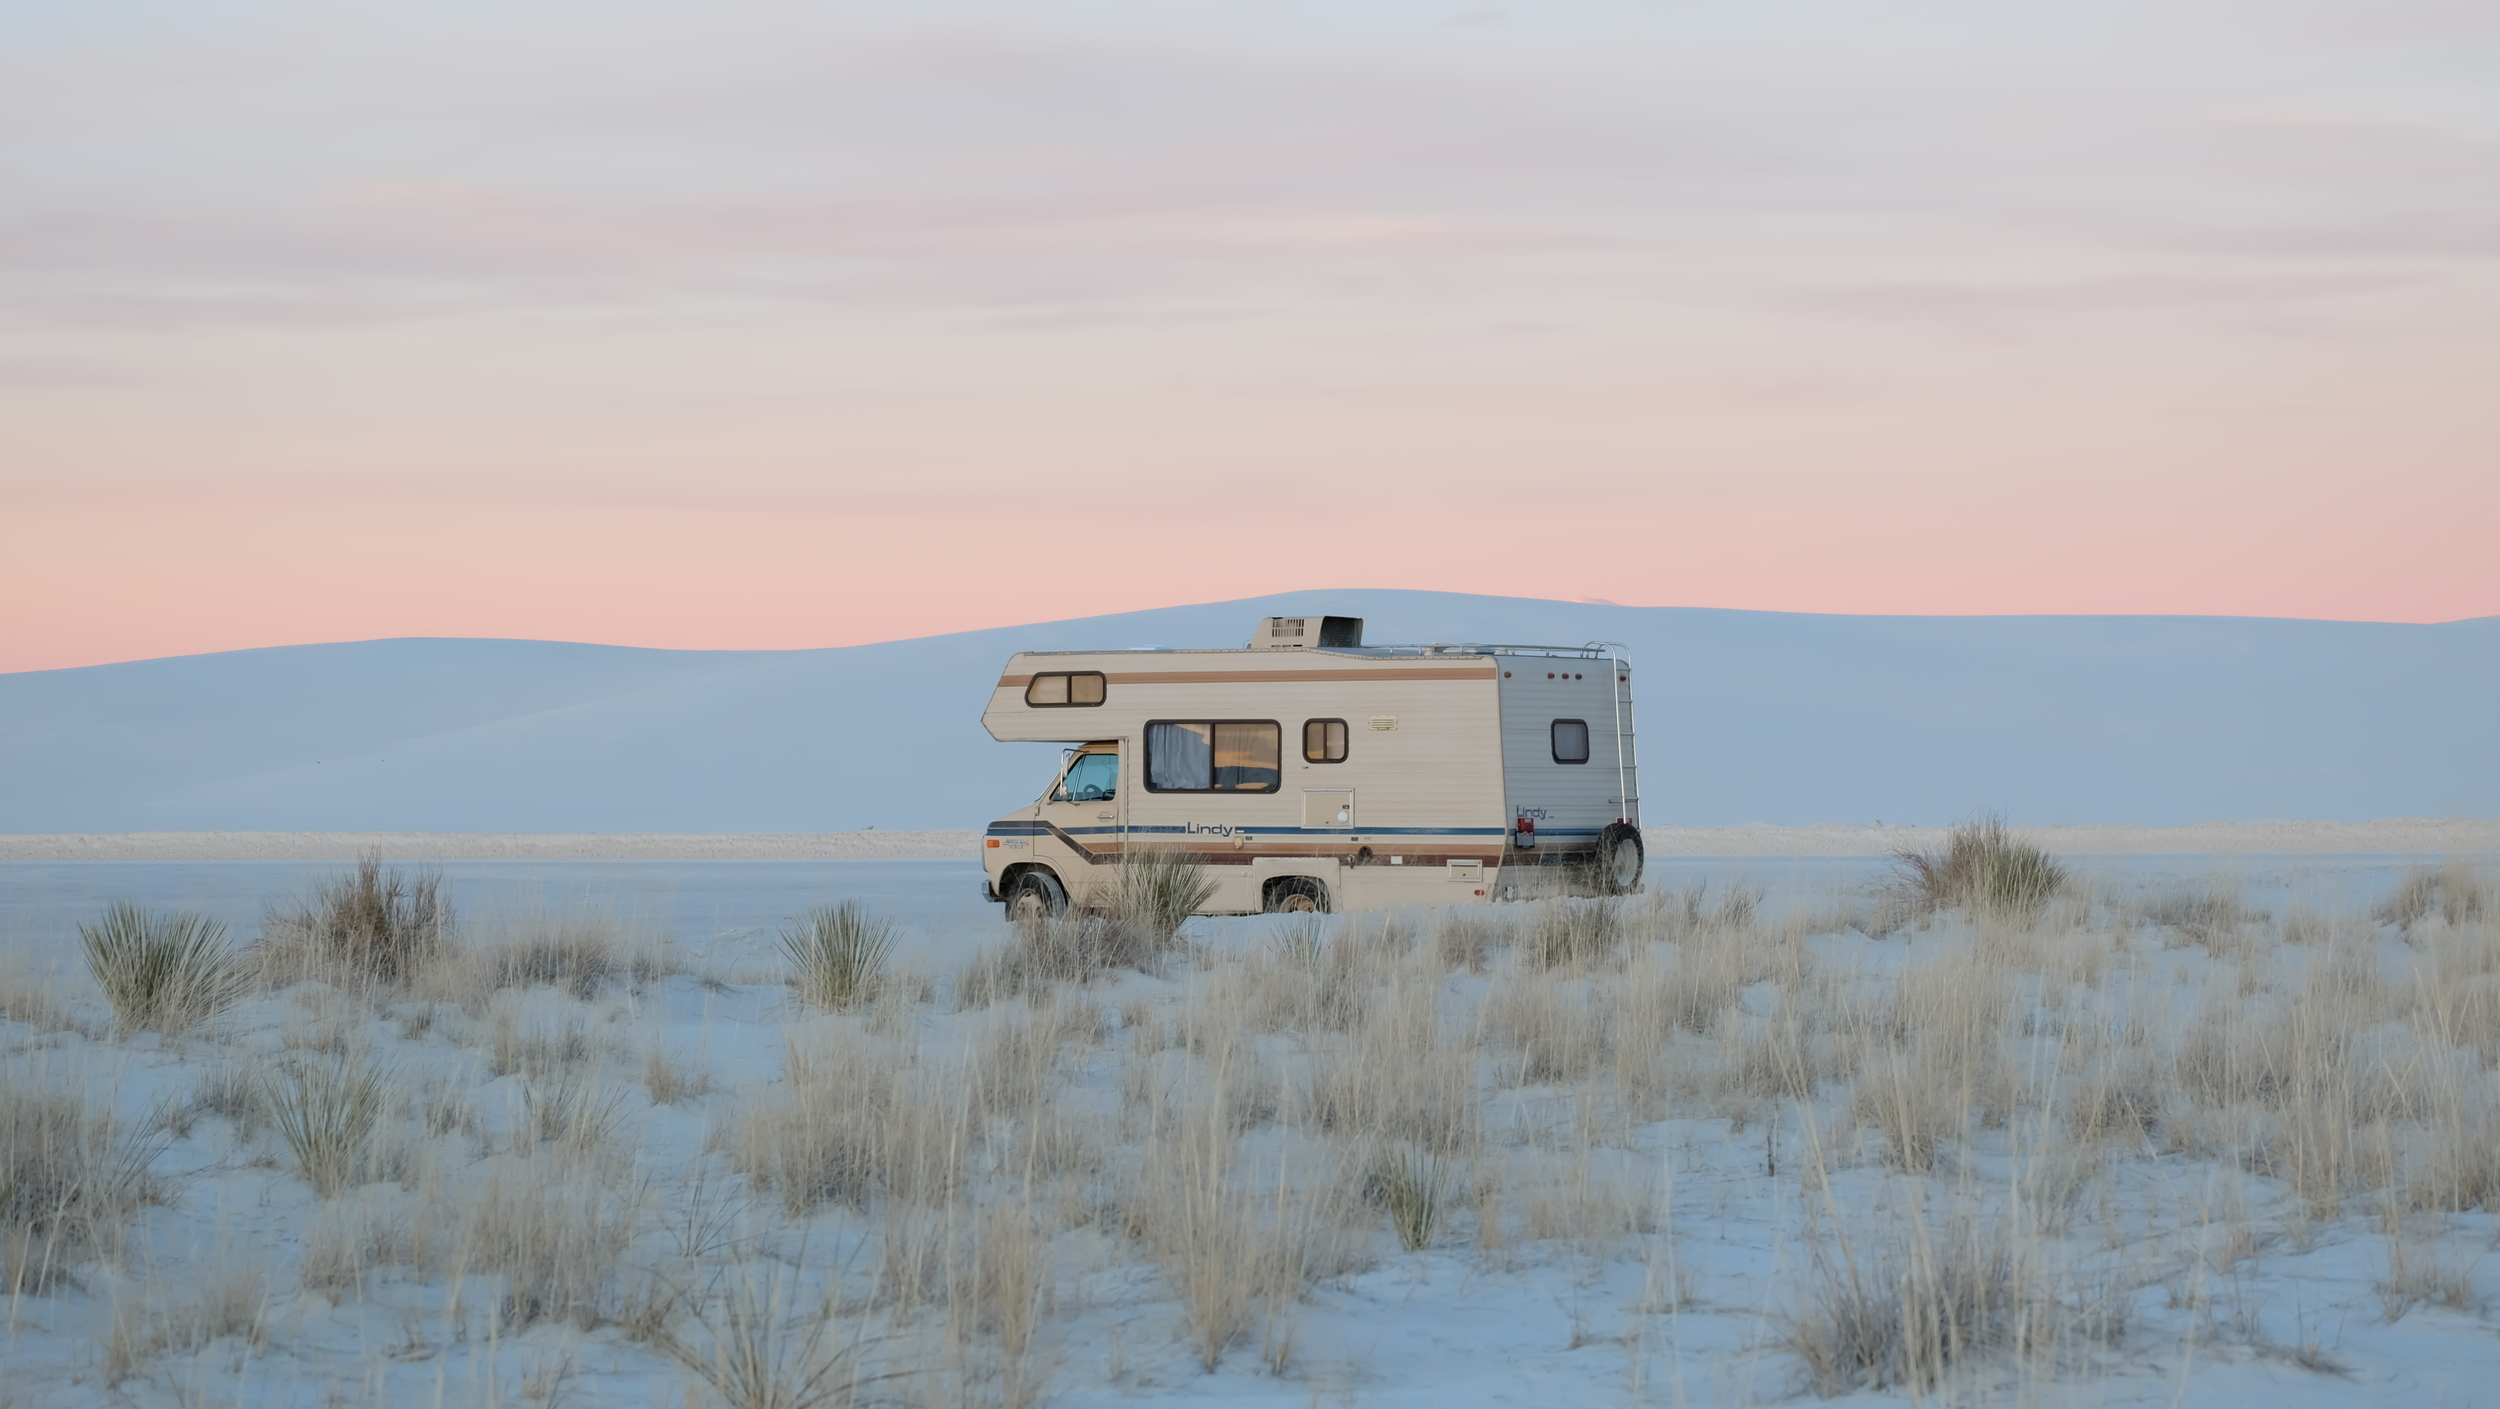 Photos from White Sands National Monument